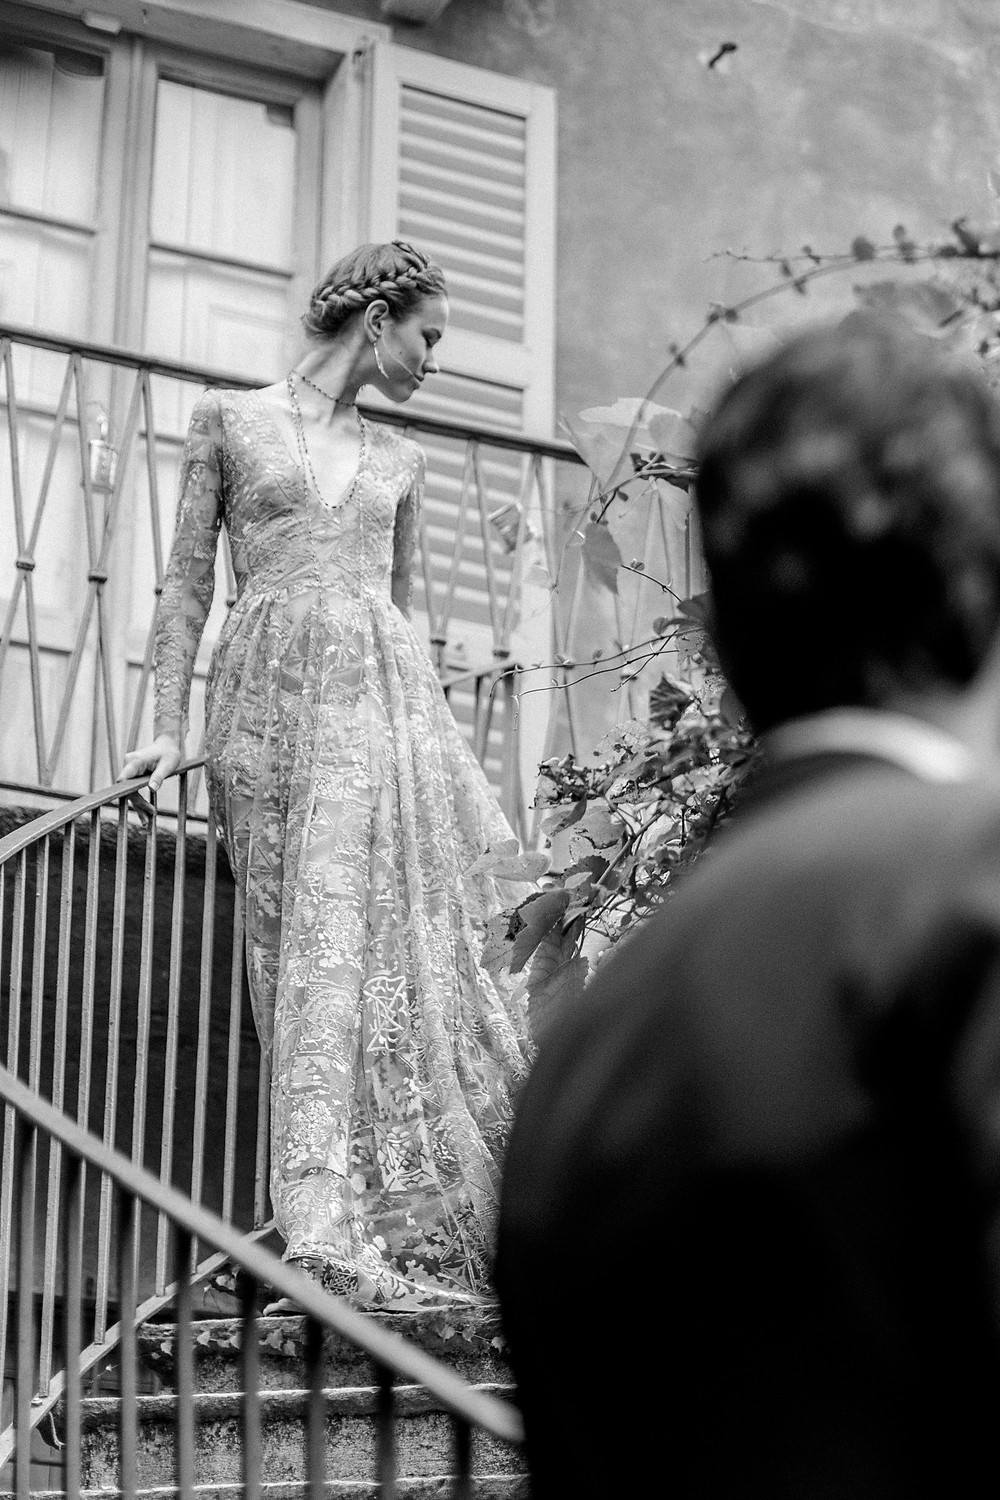 first look - Villa by the lake elopement in Lake Como Italy || Destination Weddingphotographer Italy || Victoria Ruef - Bohoray Adventure Wedding & Elopementphotographer